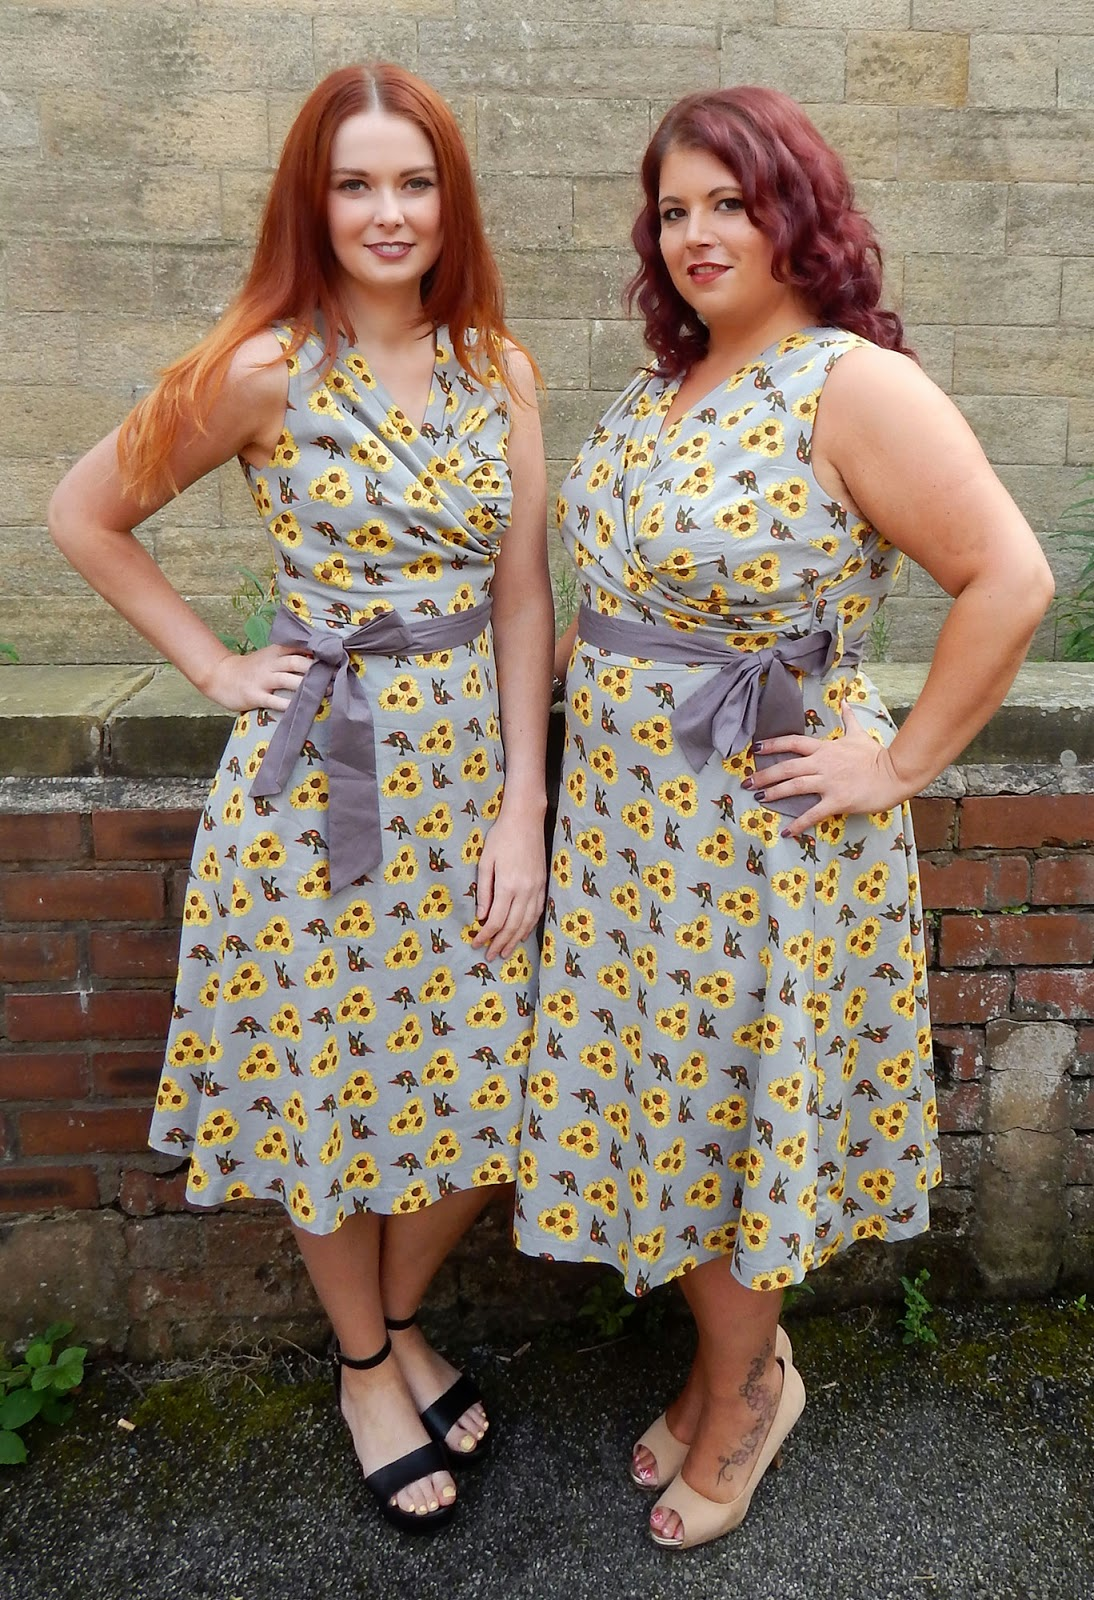 Grey sunflower print 1950's style dresses on two models